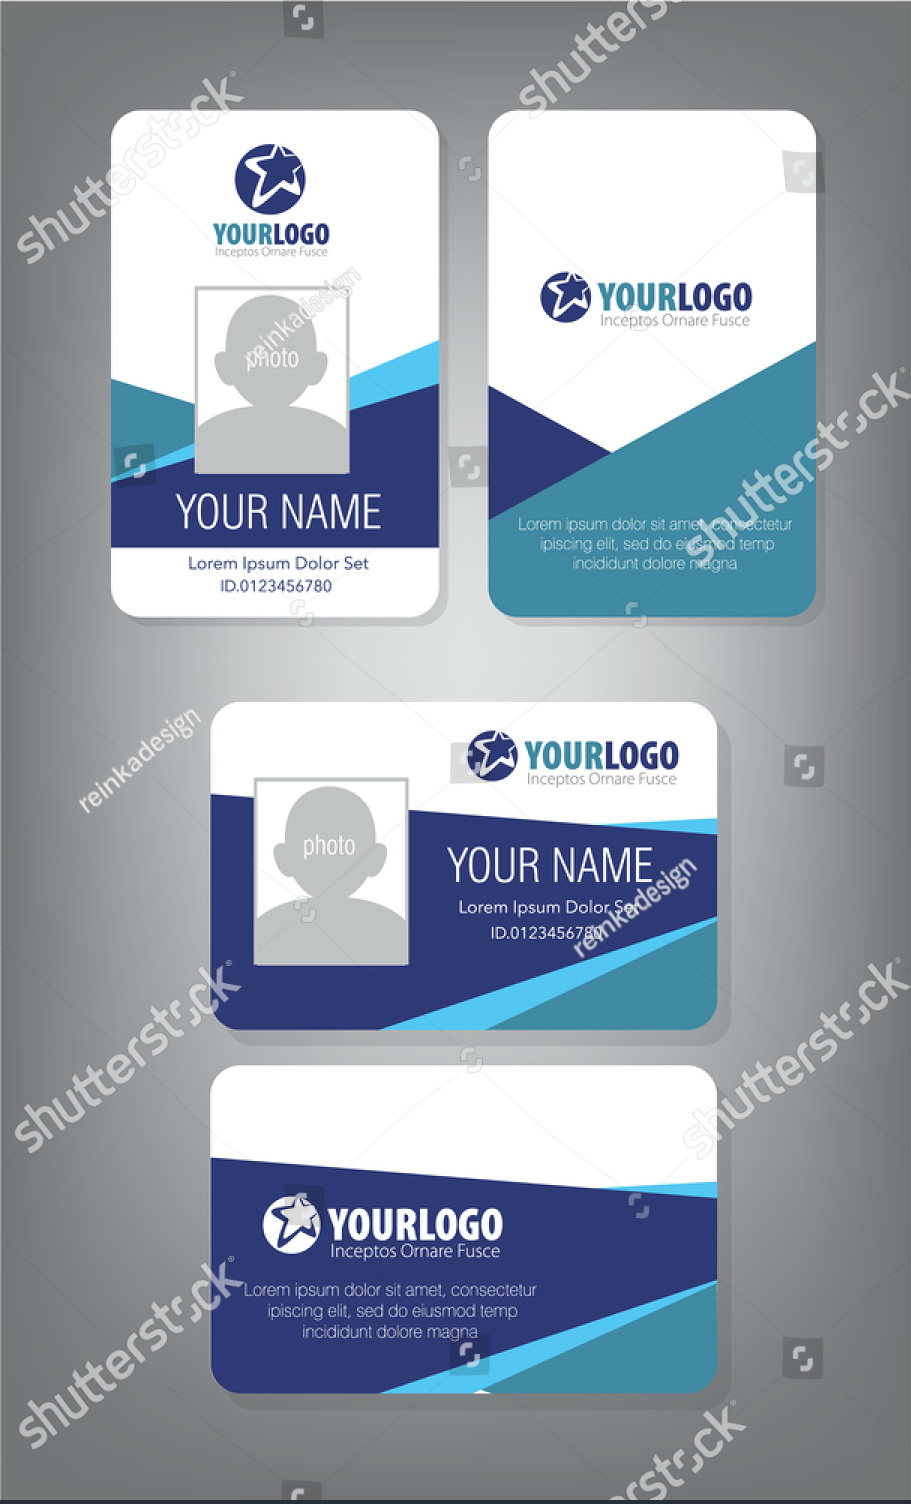 Horizontalverticalidcarddesign  Employee Id Card  Id Card For Personal Identification Card Template